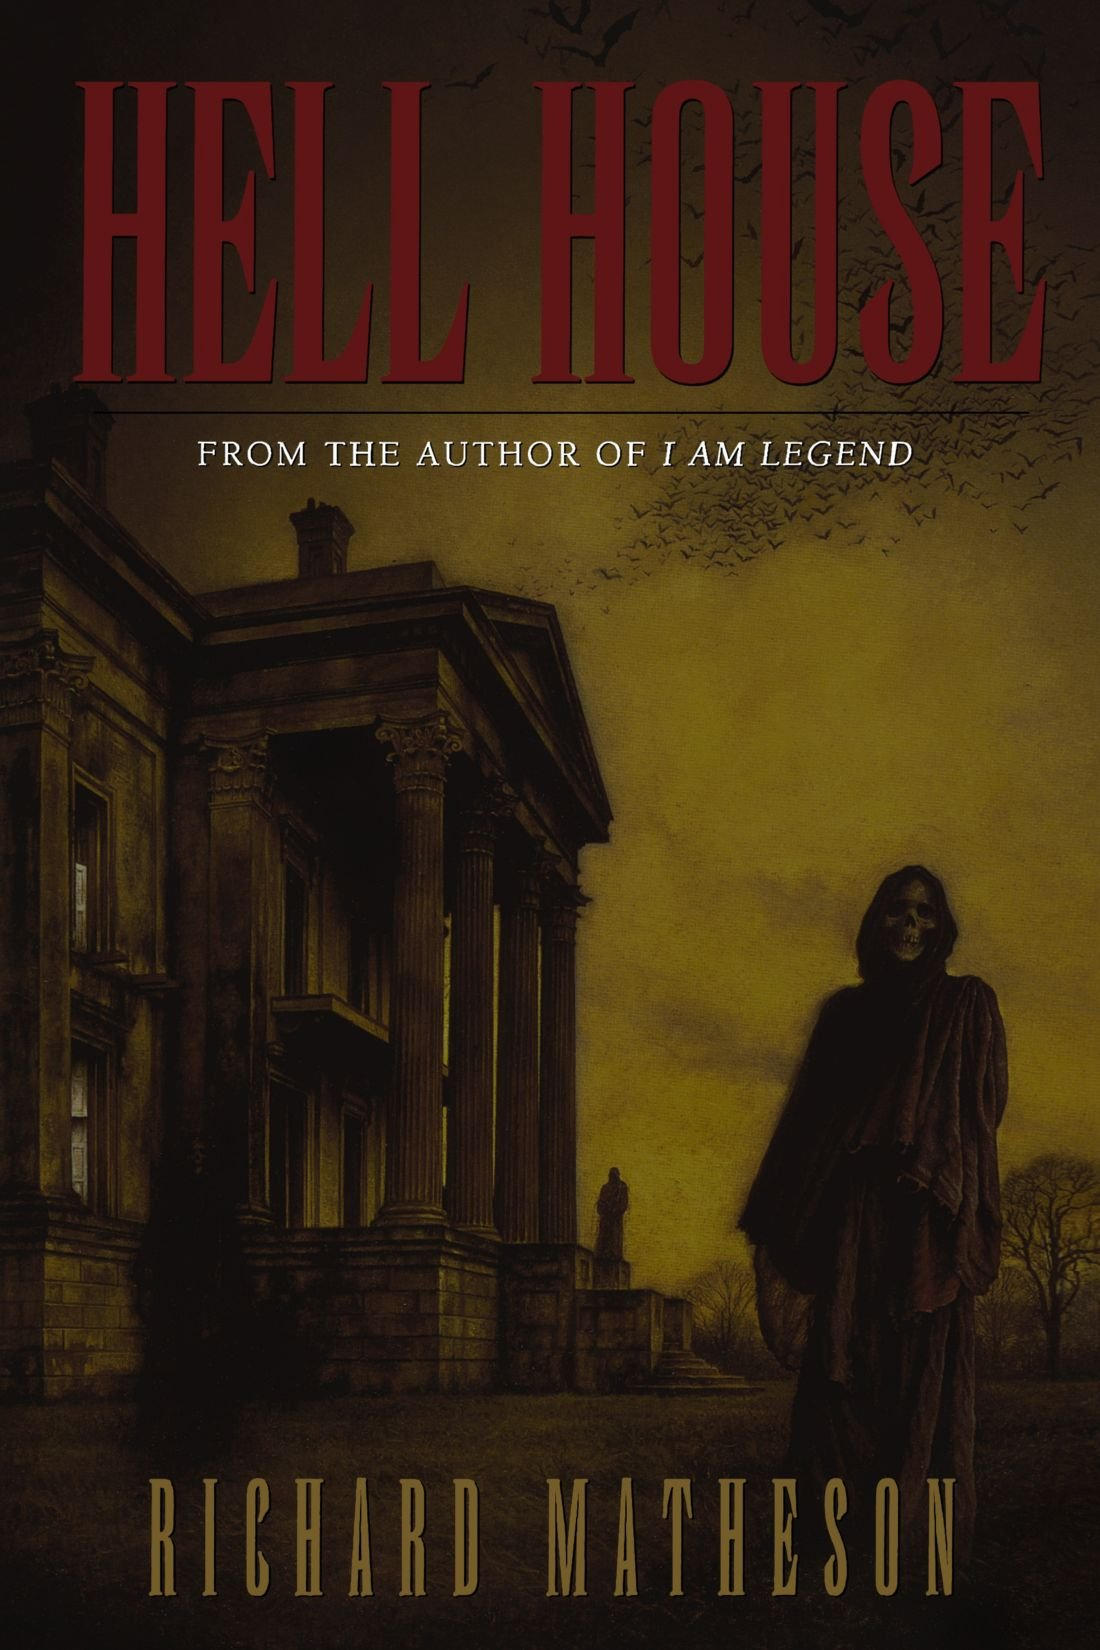 Hell House book cover